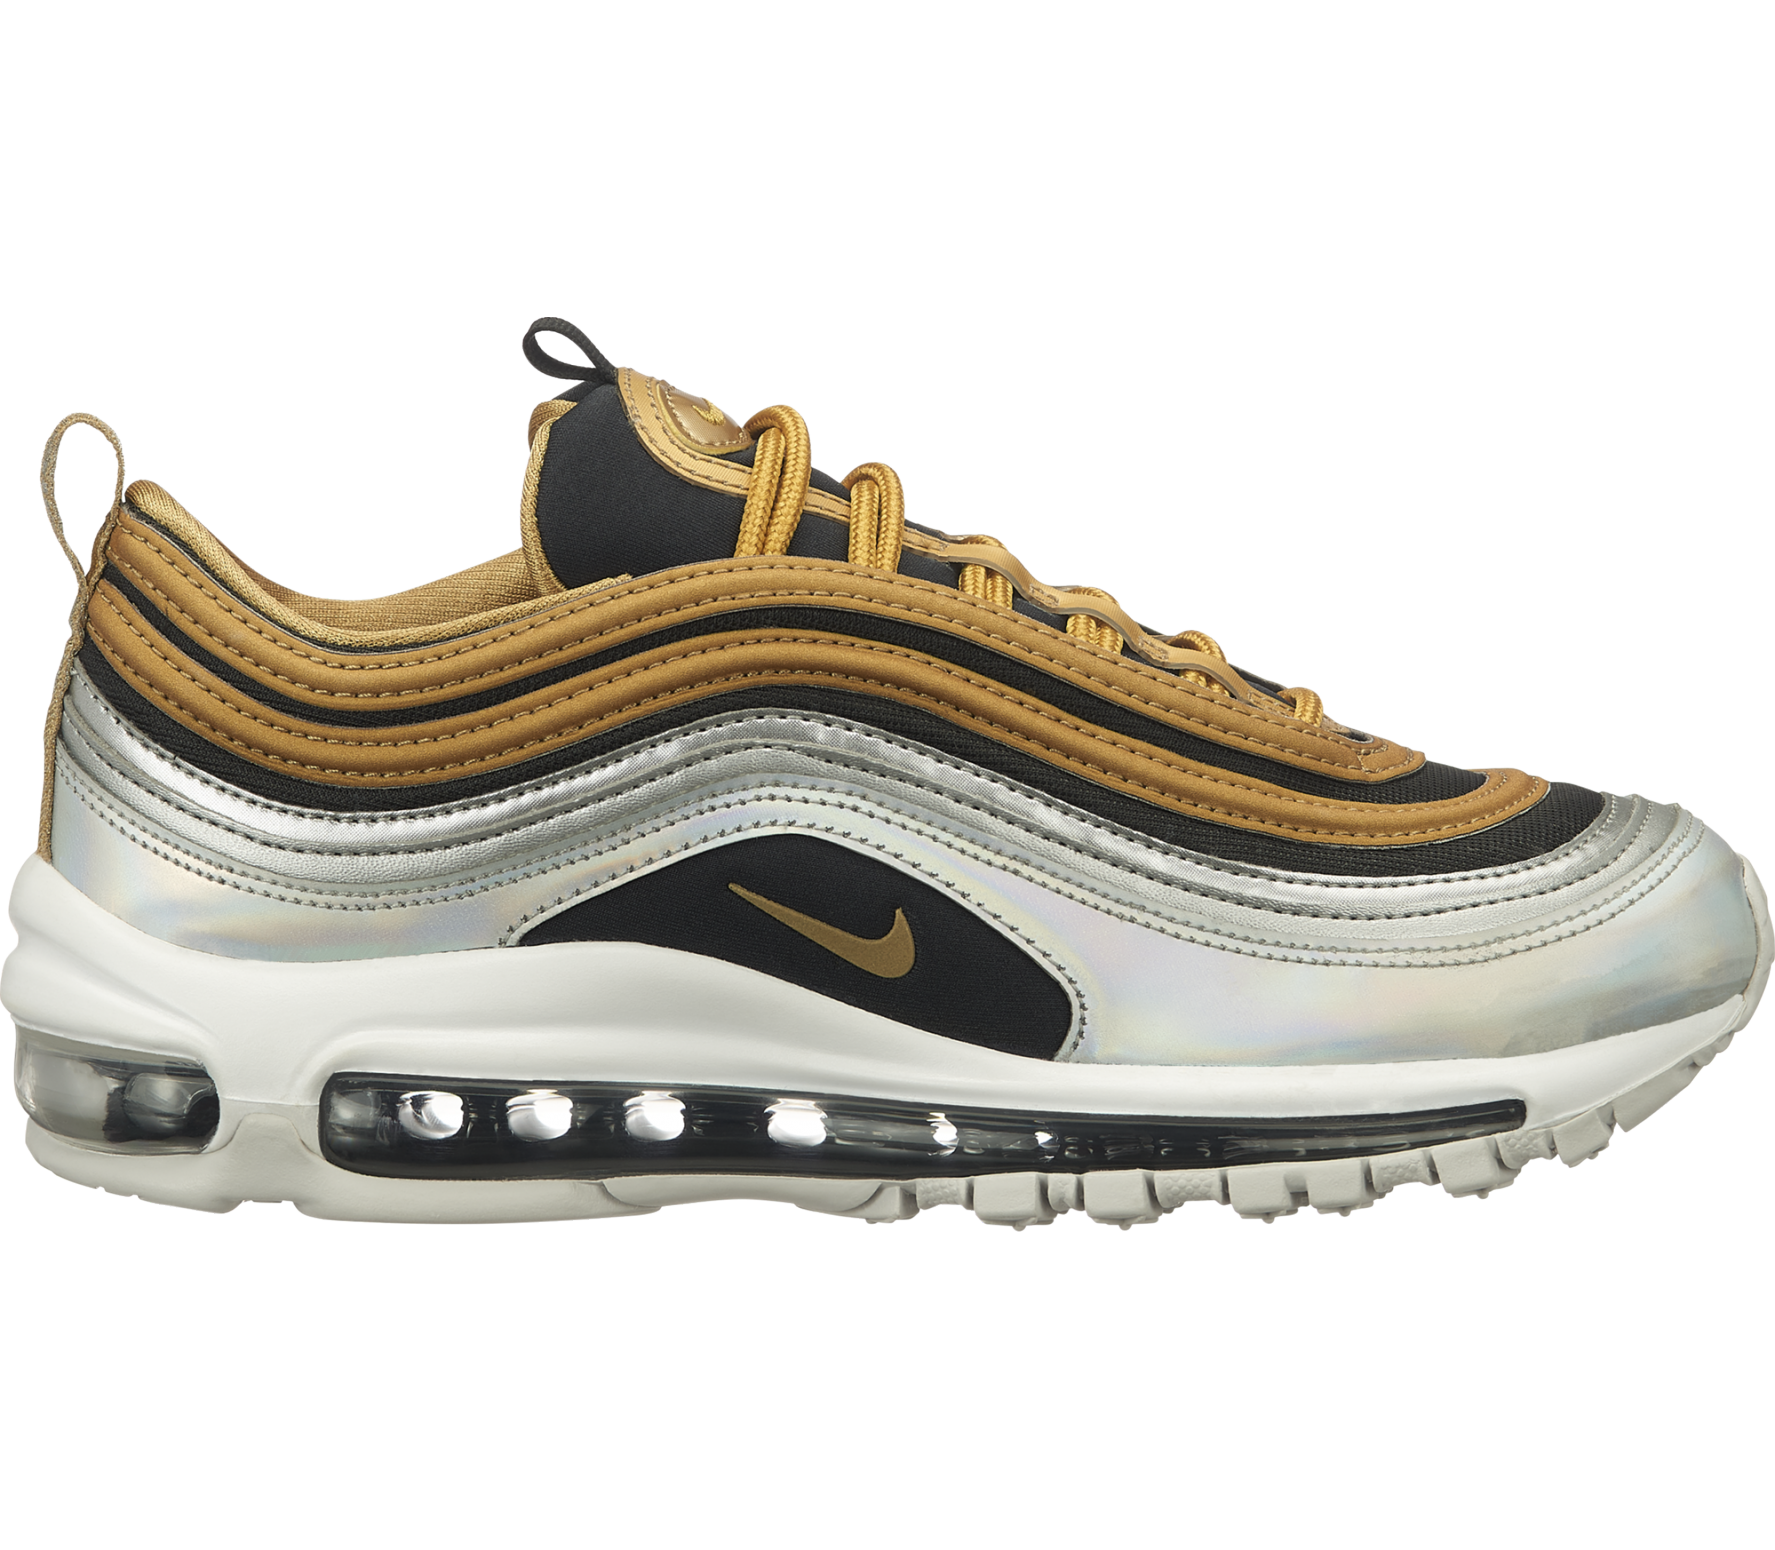 low priced 33c19 0ddde Nike Sportswear - Air Max 97 Special Edition women s trainers (gold silver)